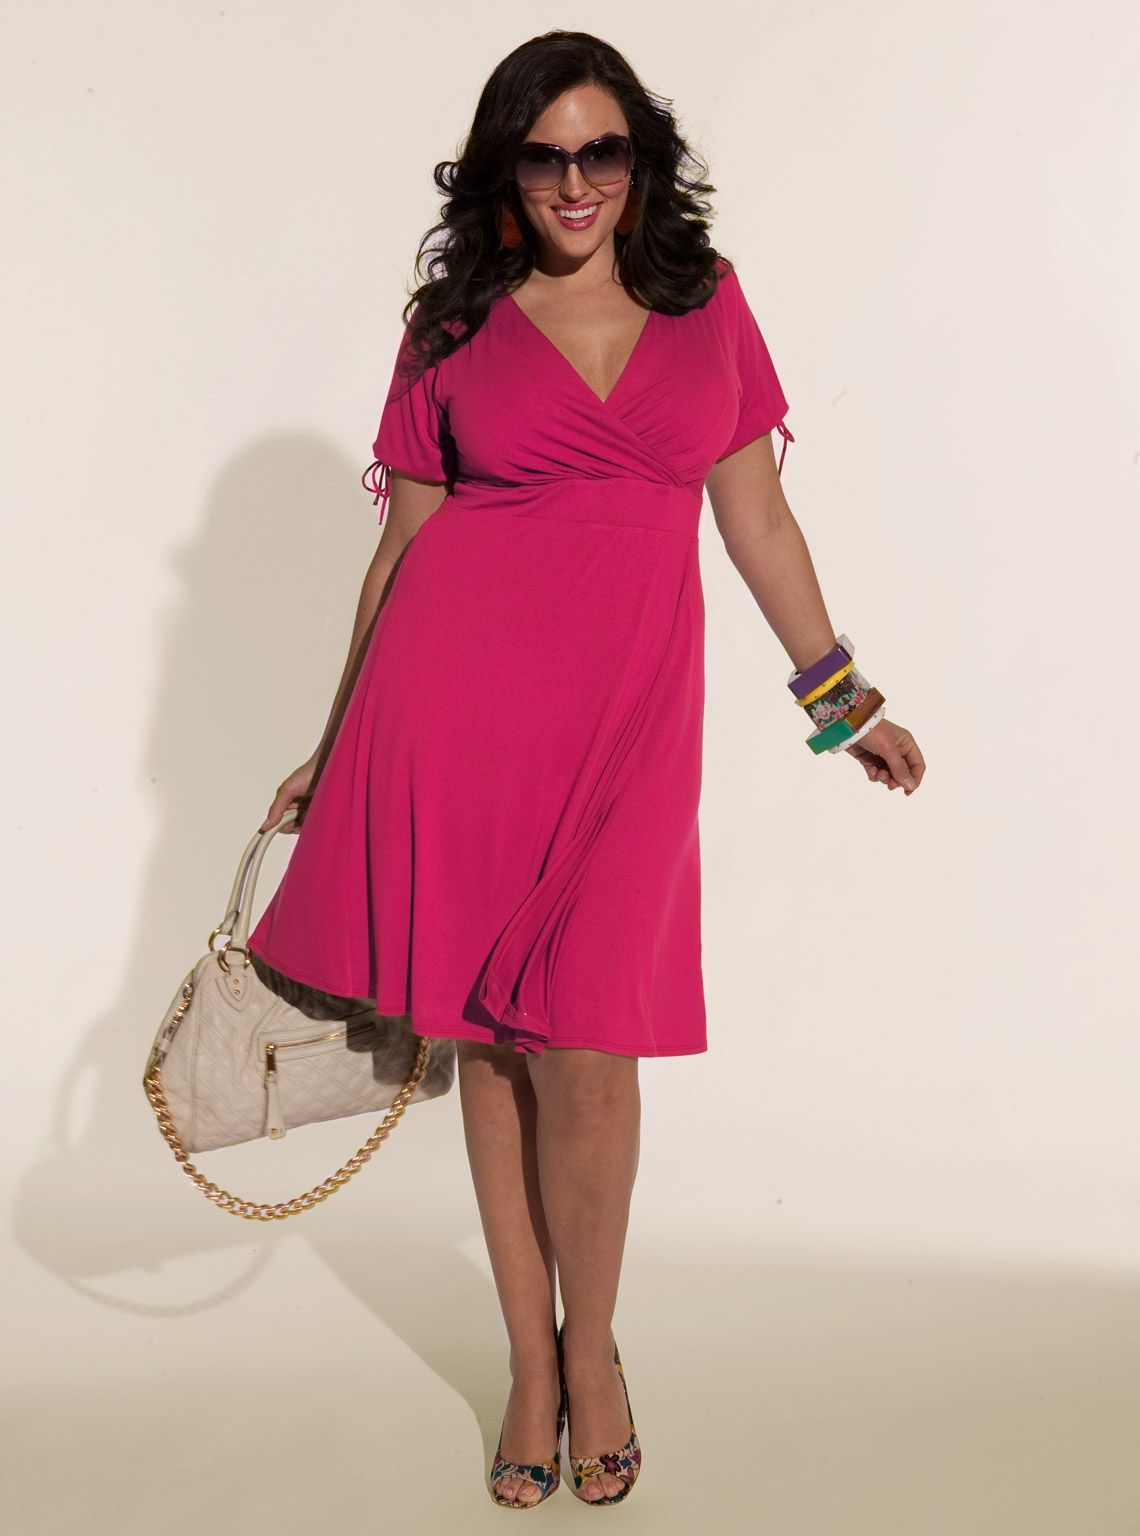 Plus size dresses for a wedding  looks comfortable  Summer Fun  Pinterest  Online clothes shopping